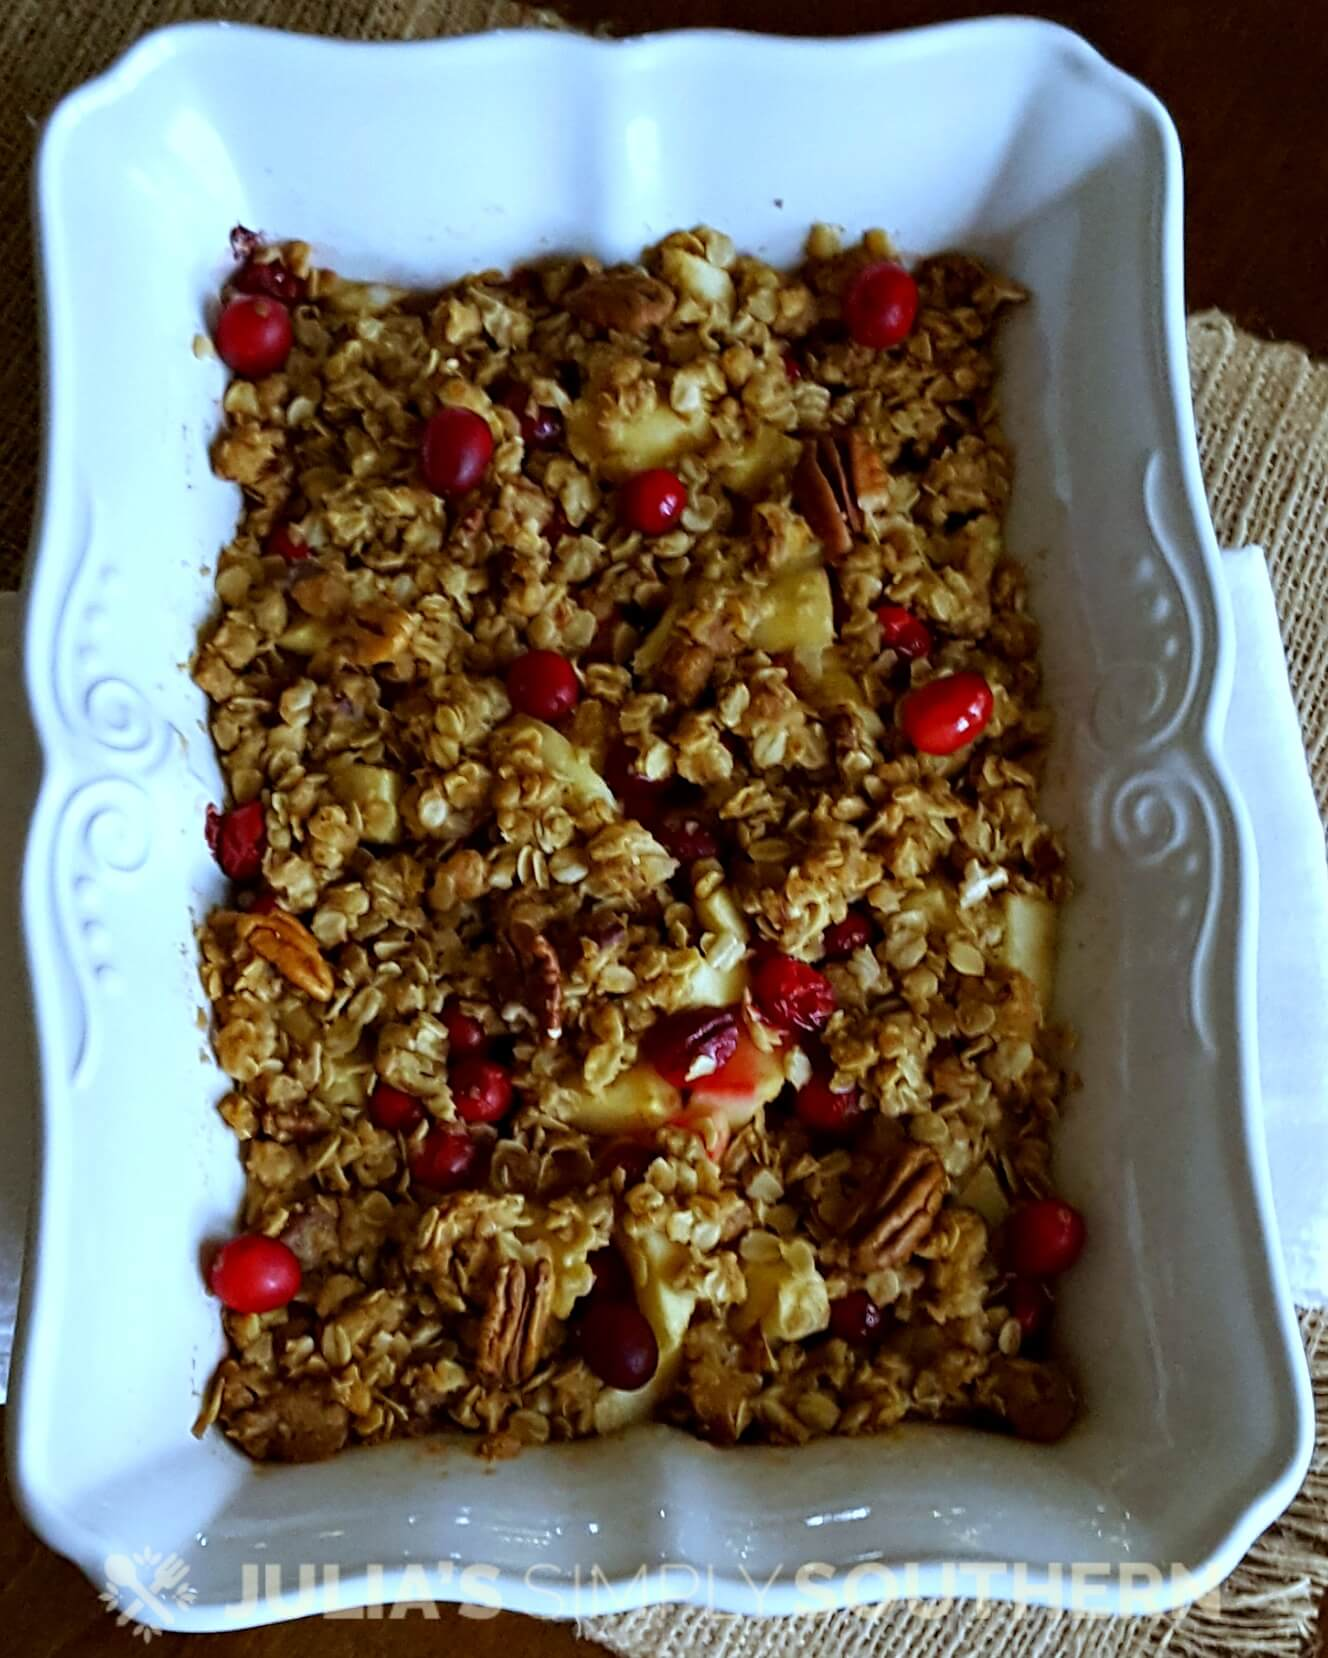 White baking dish with apple cranberry cobbler